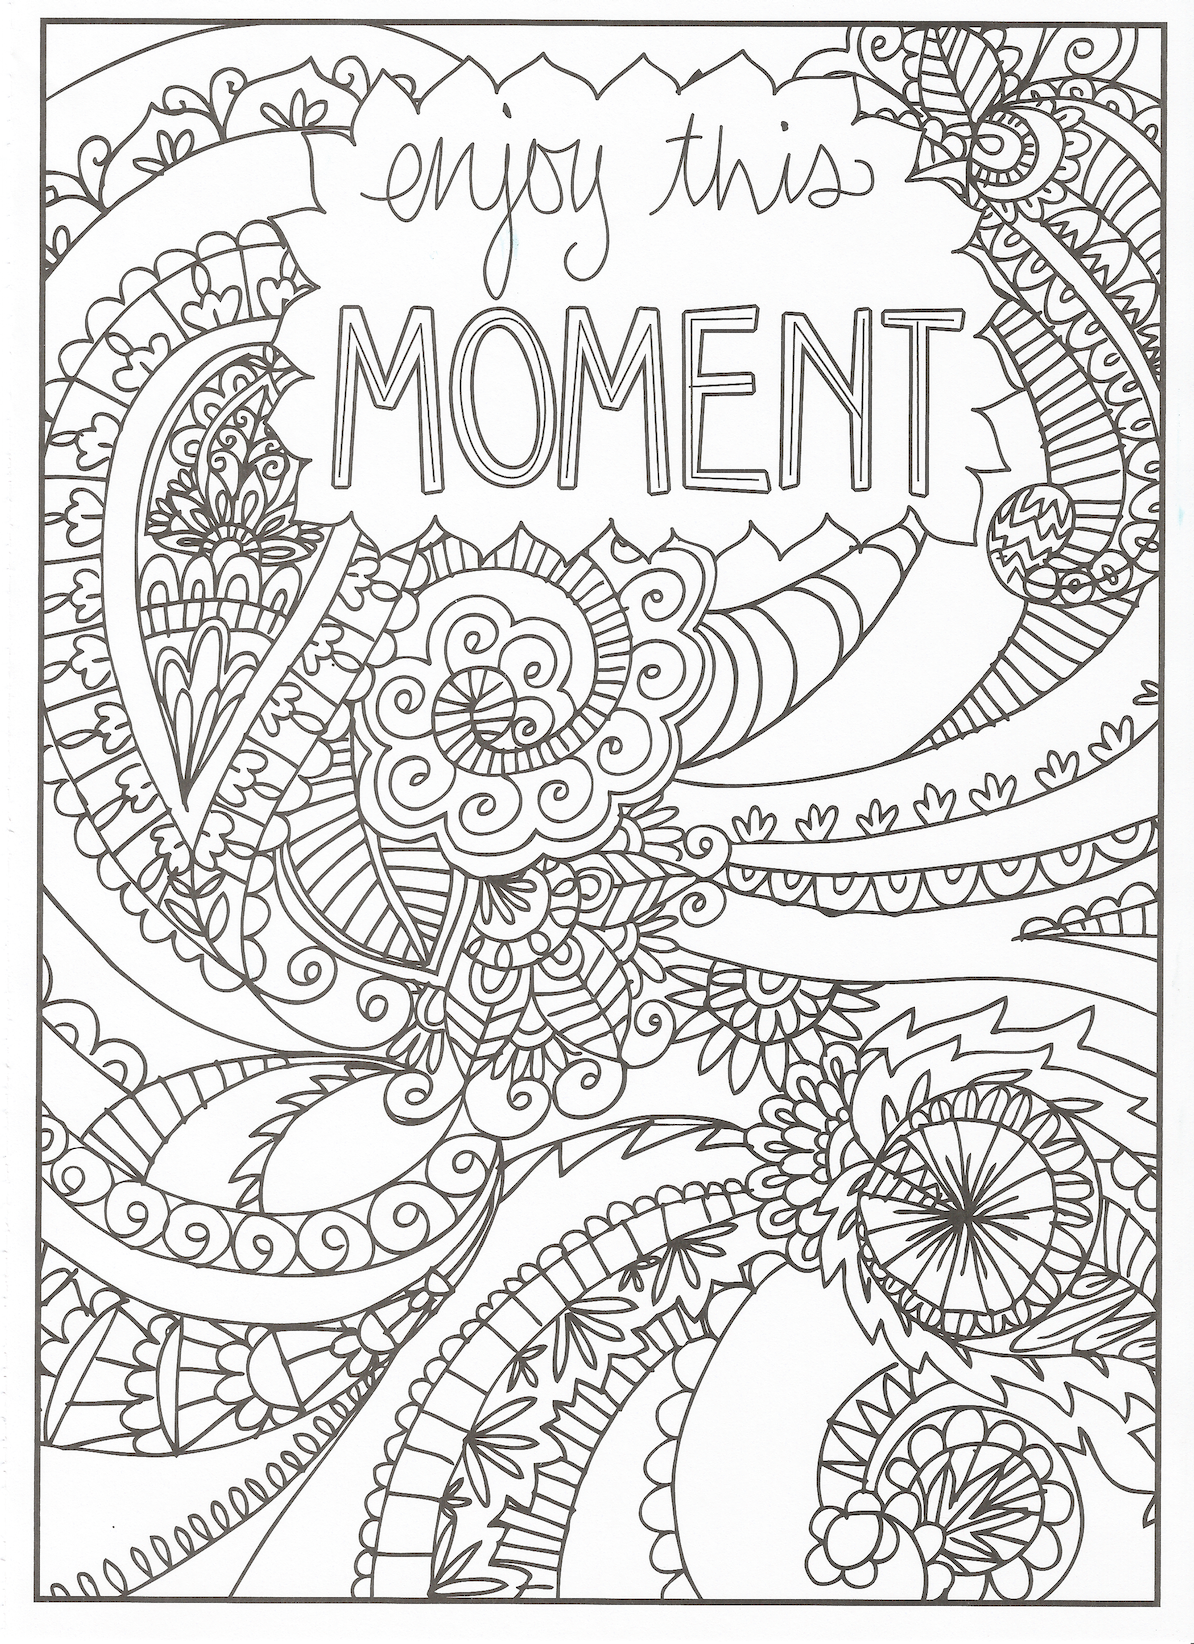 Timeless Creations Creative Quotes Coloring Page Enjoy This Moment Quote Coloring Pages Inspirational Quotes Coloring Words Coloring Book